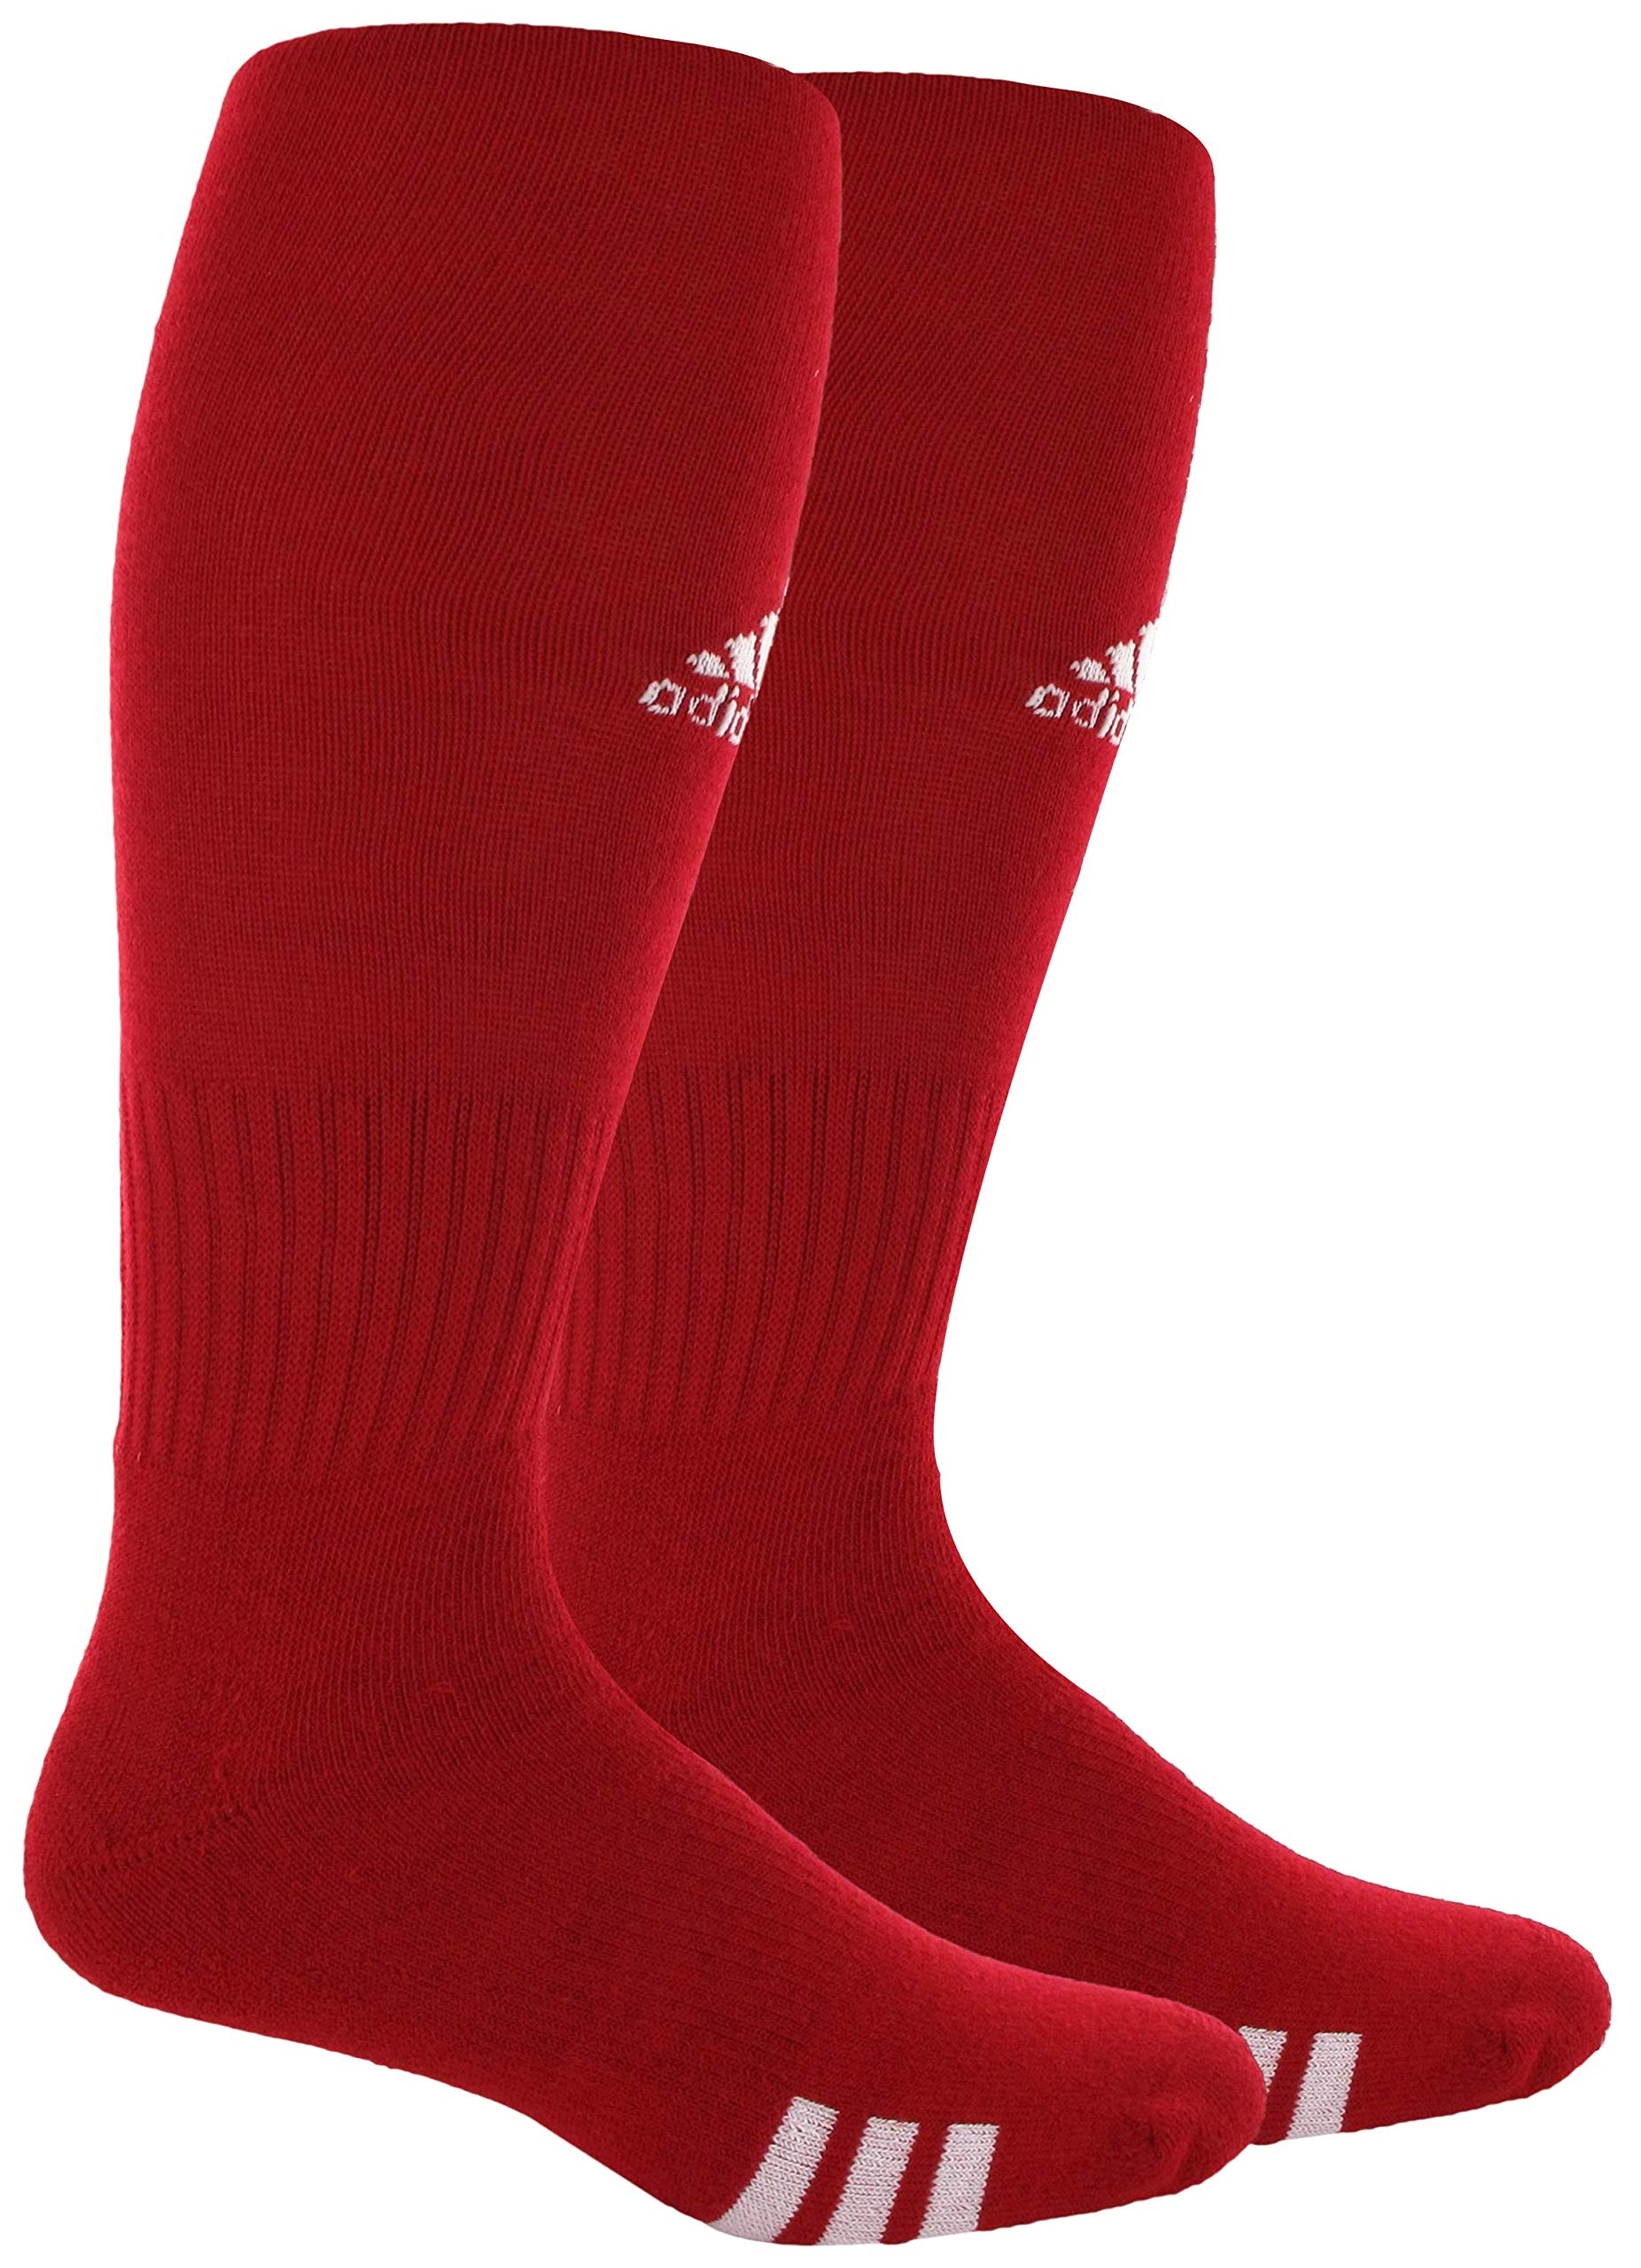 adidas Unisex Rivalry Field OTC Sock (2-Pair), University Red/White, 9-13 by adidas